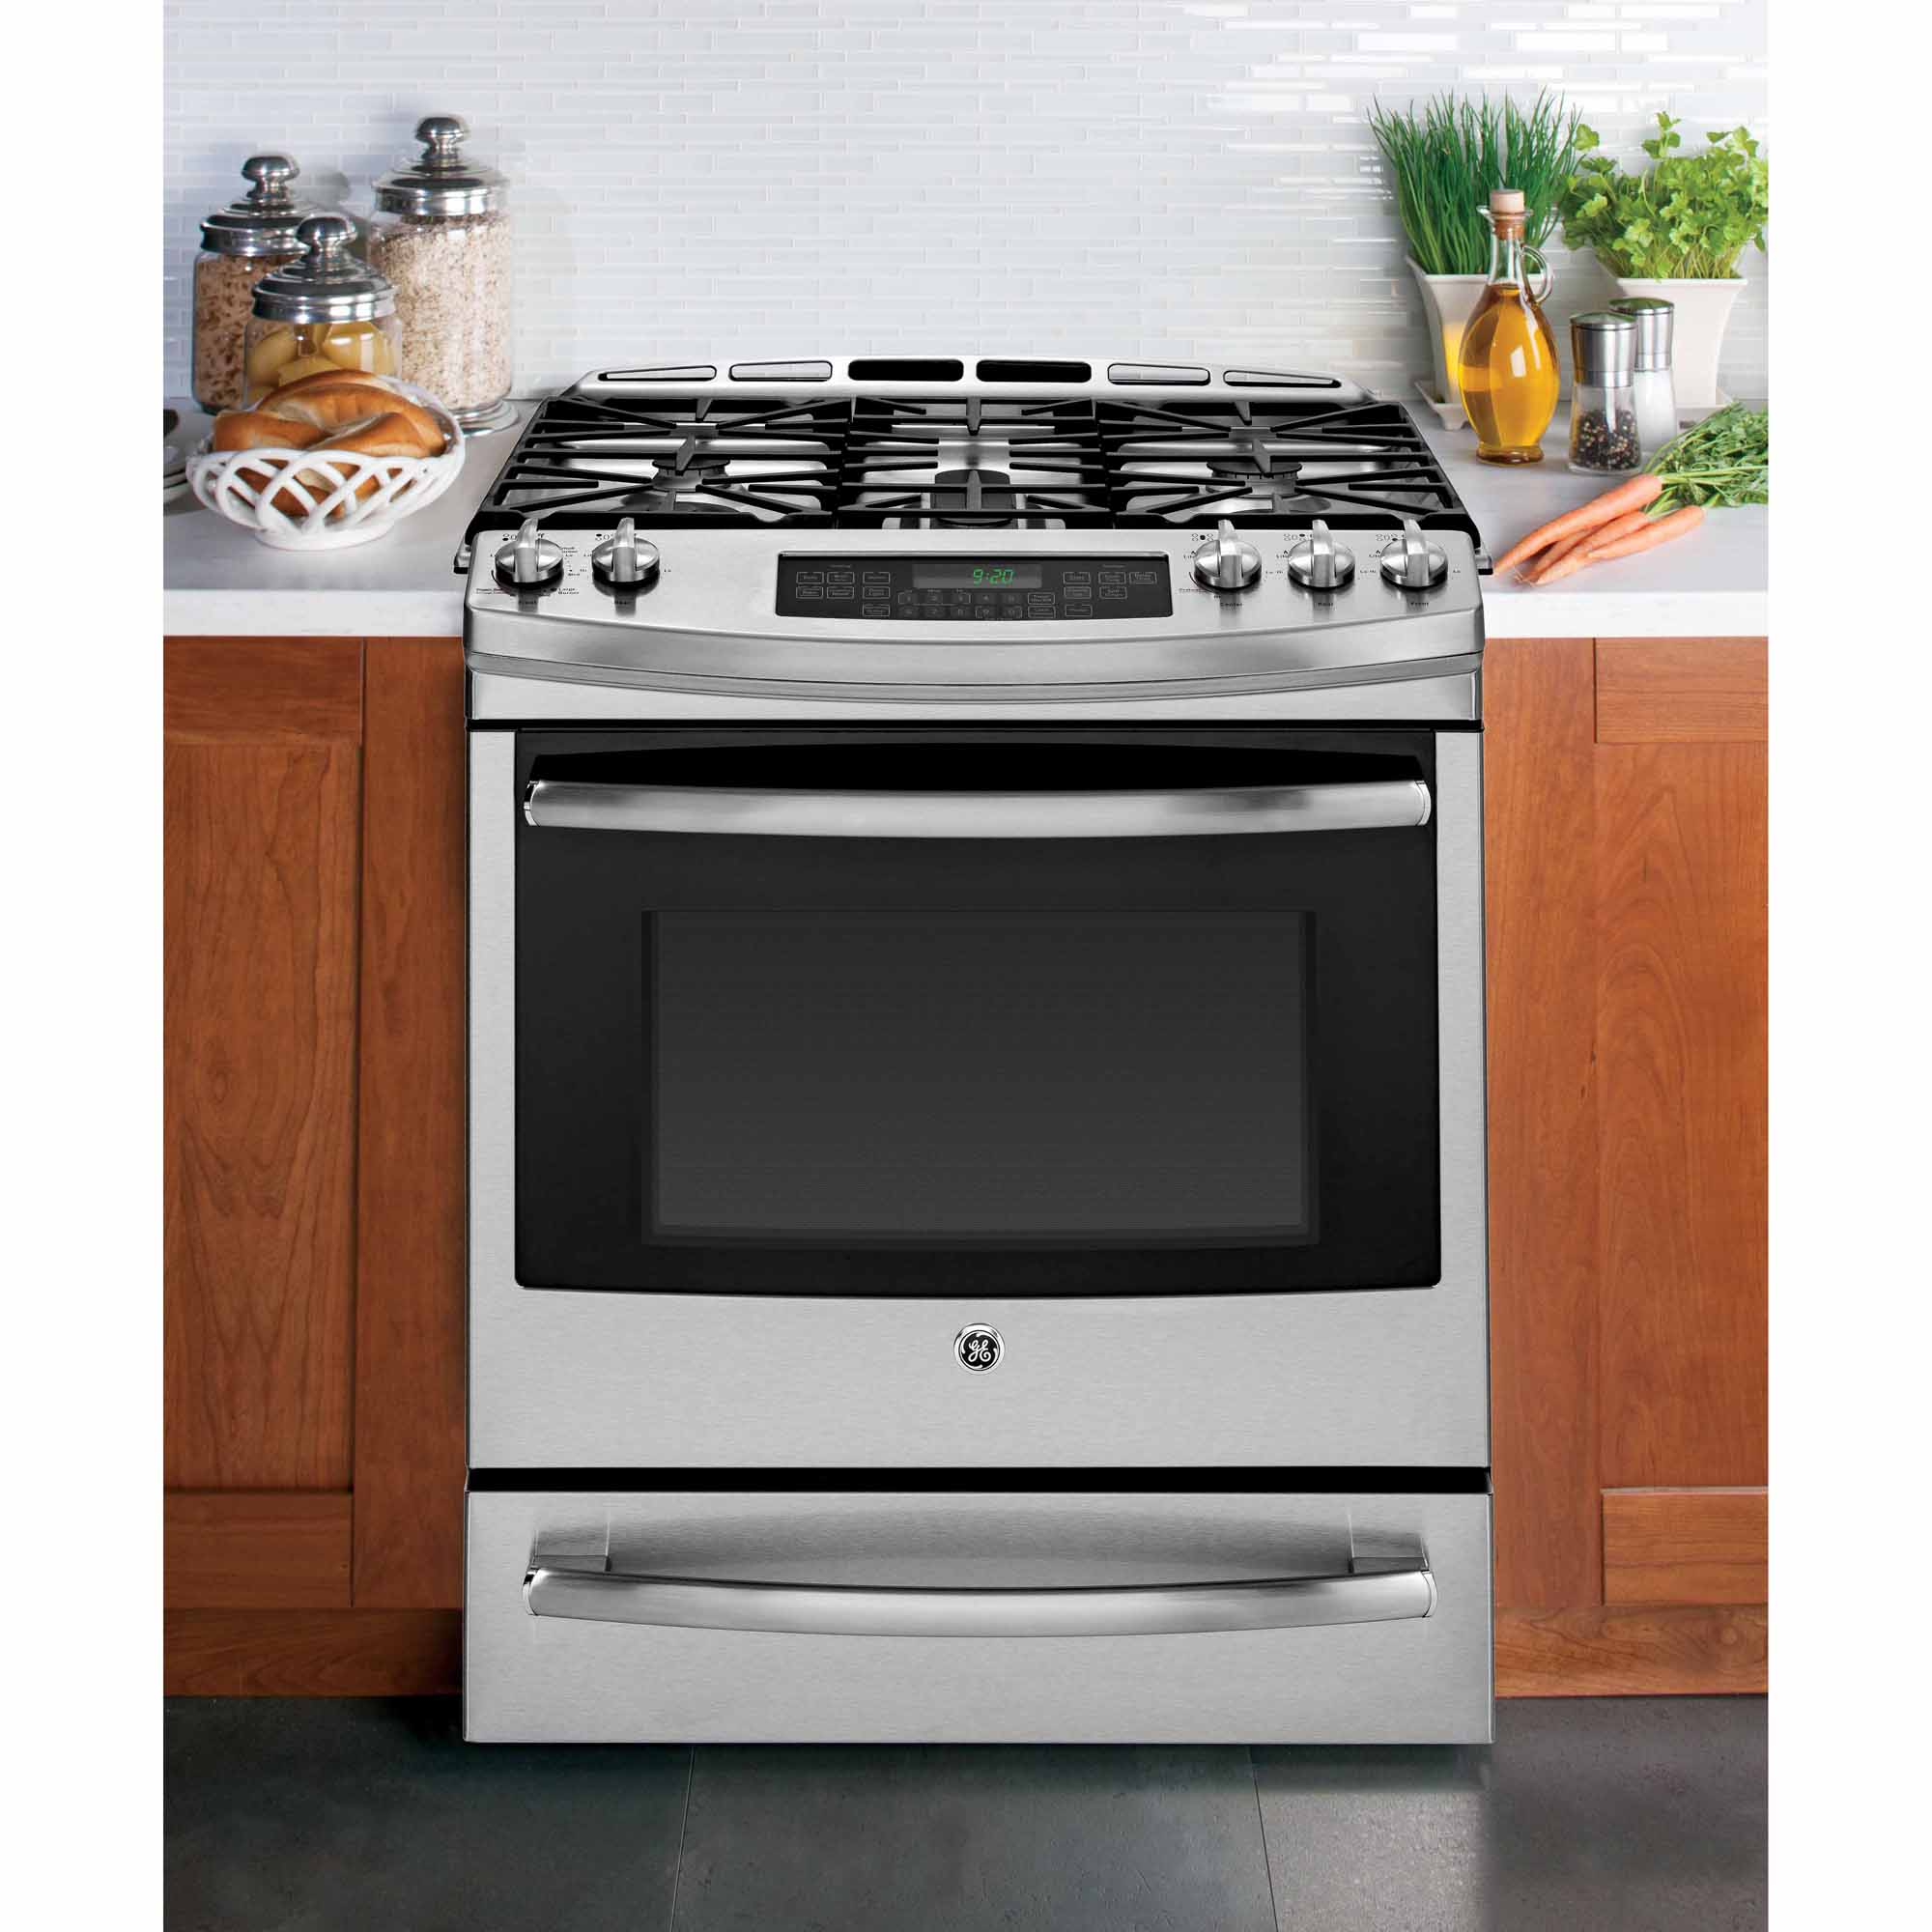 "GE Profile 30"" Dual-Fuel Slide-In Range w/ Warming Drawer - Stainless Steel"